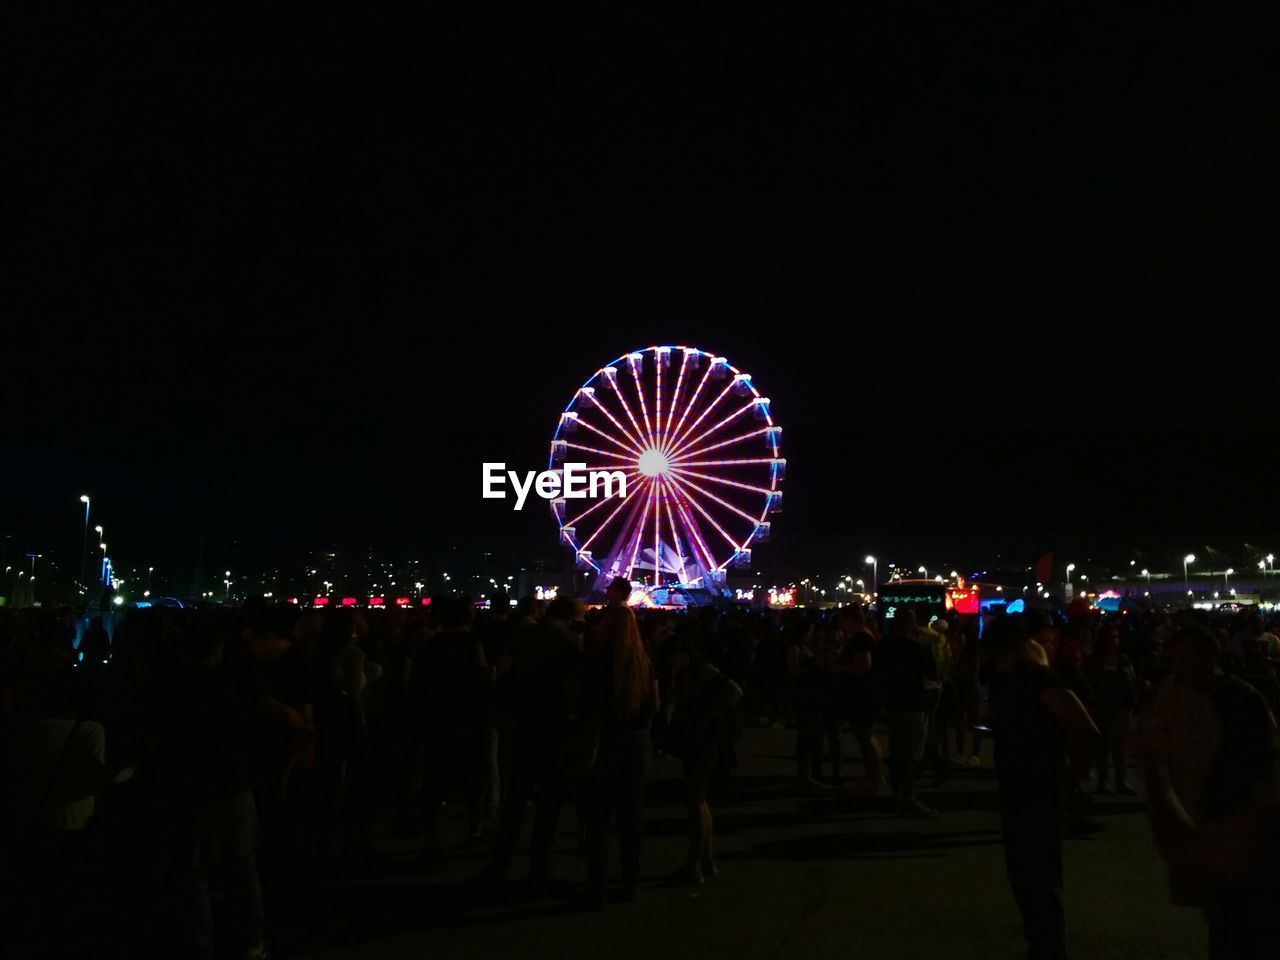 illuminated, night, large group of people, arts culture and entertainment, real people, leisure activity, amusement park, enjoyment, men, women, outdoors, amusement park ride, crowd, sky, nature, people